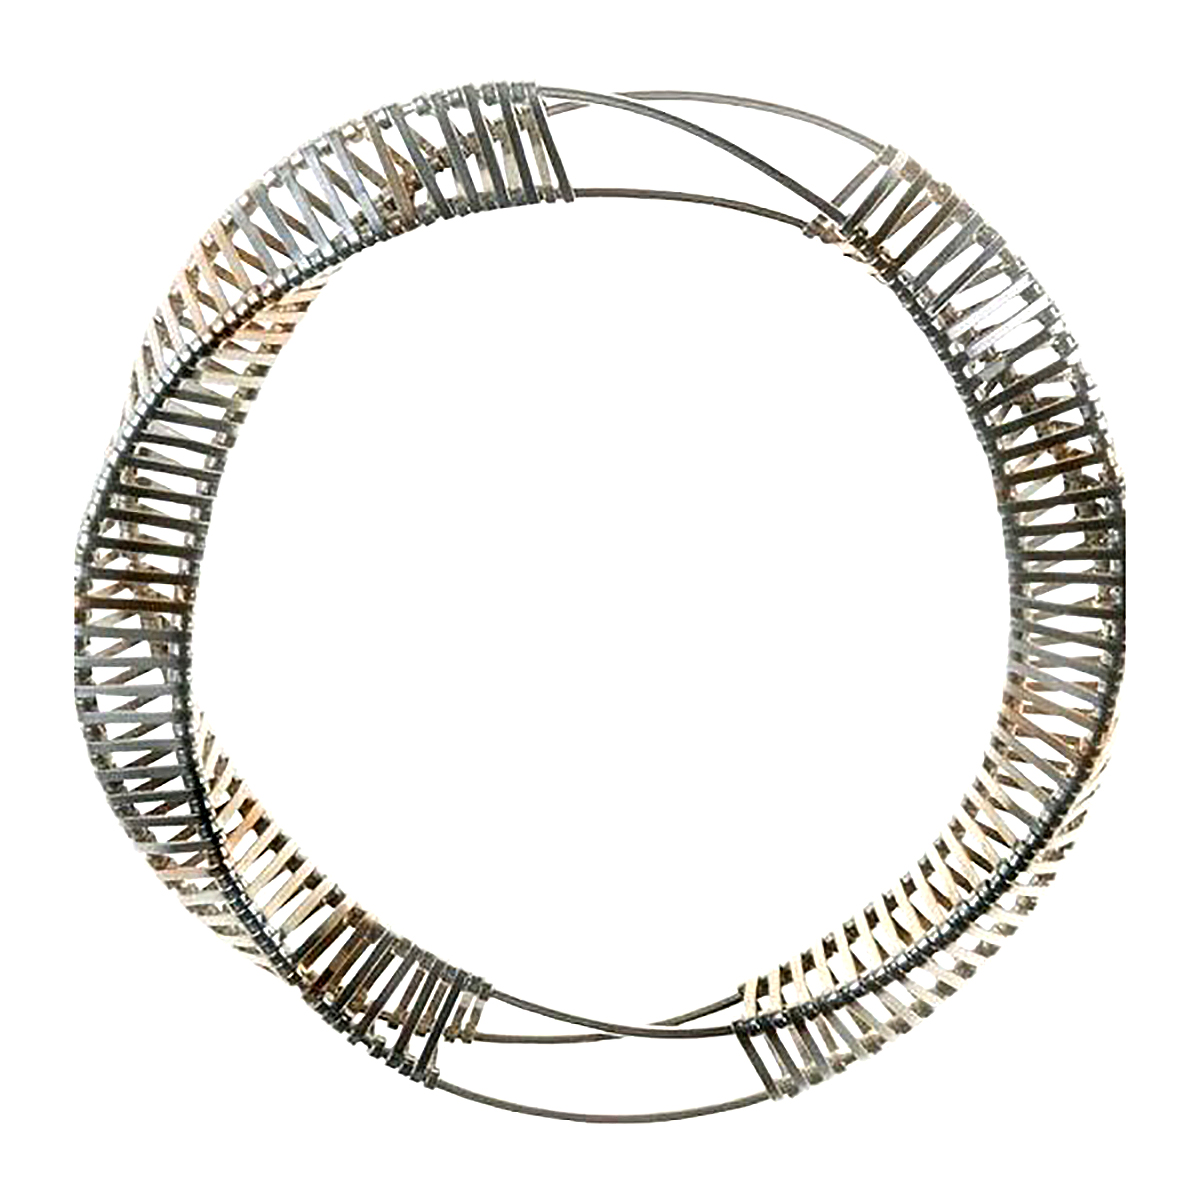 Zoë Mion, 'Biotecture', recycled eco-silver, gold